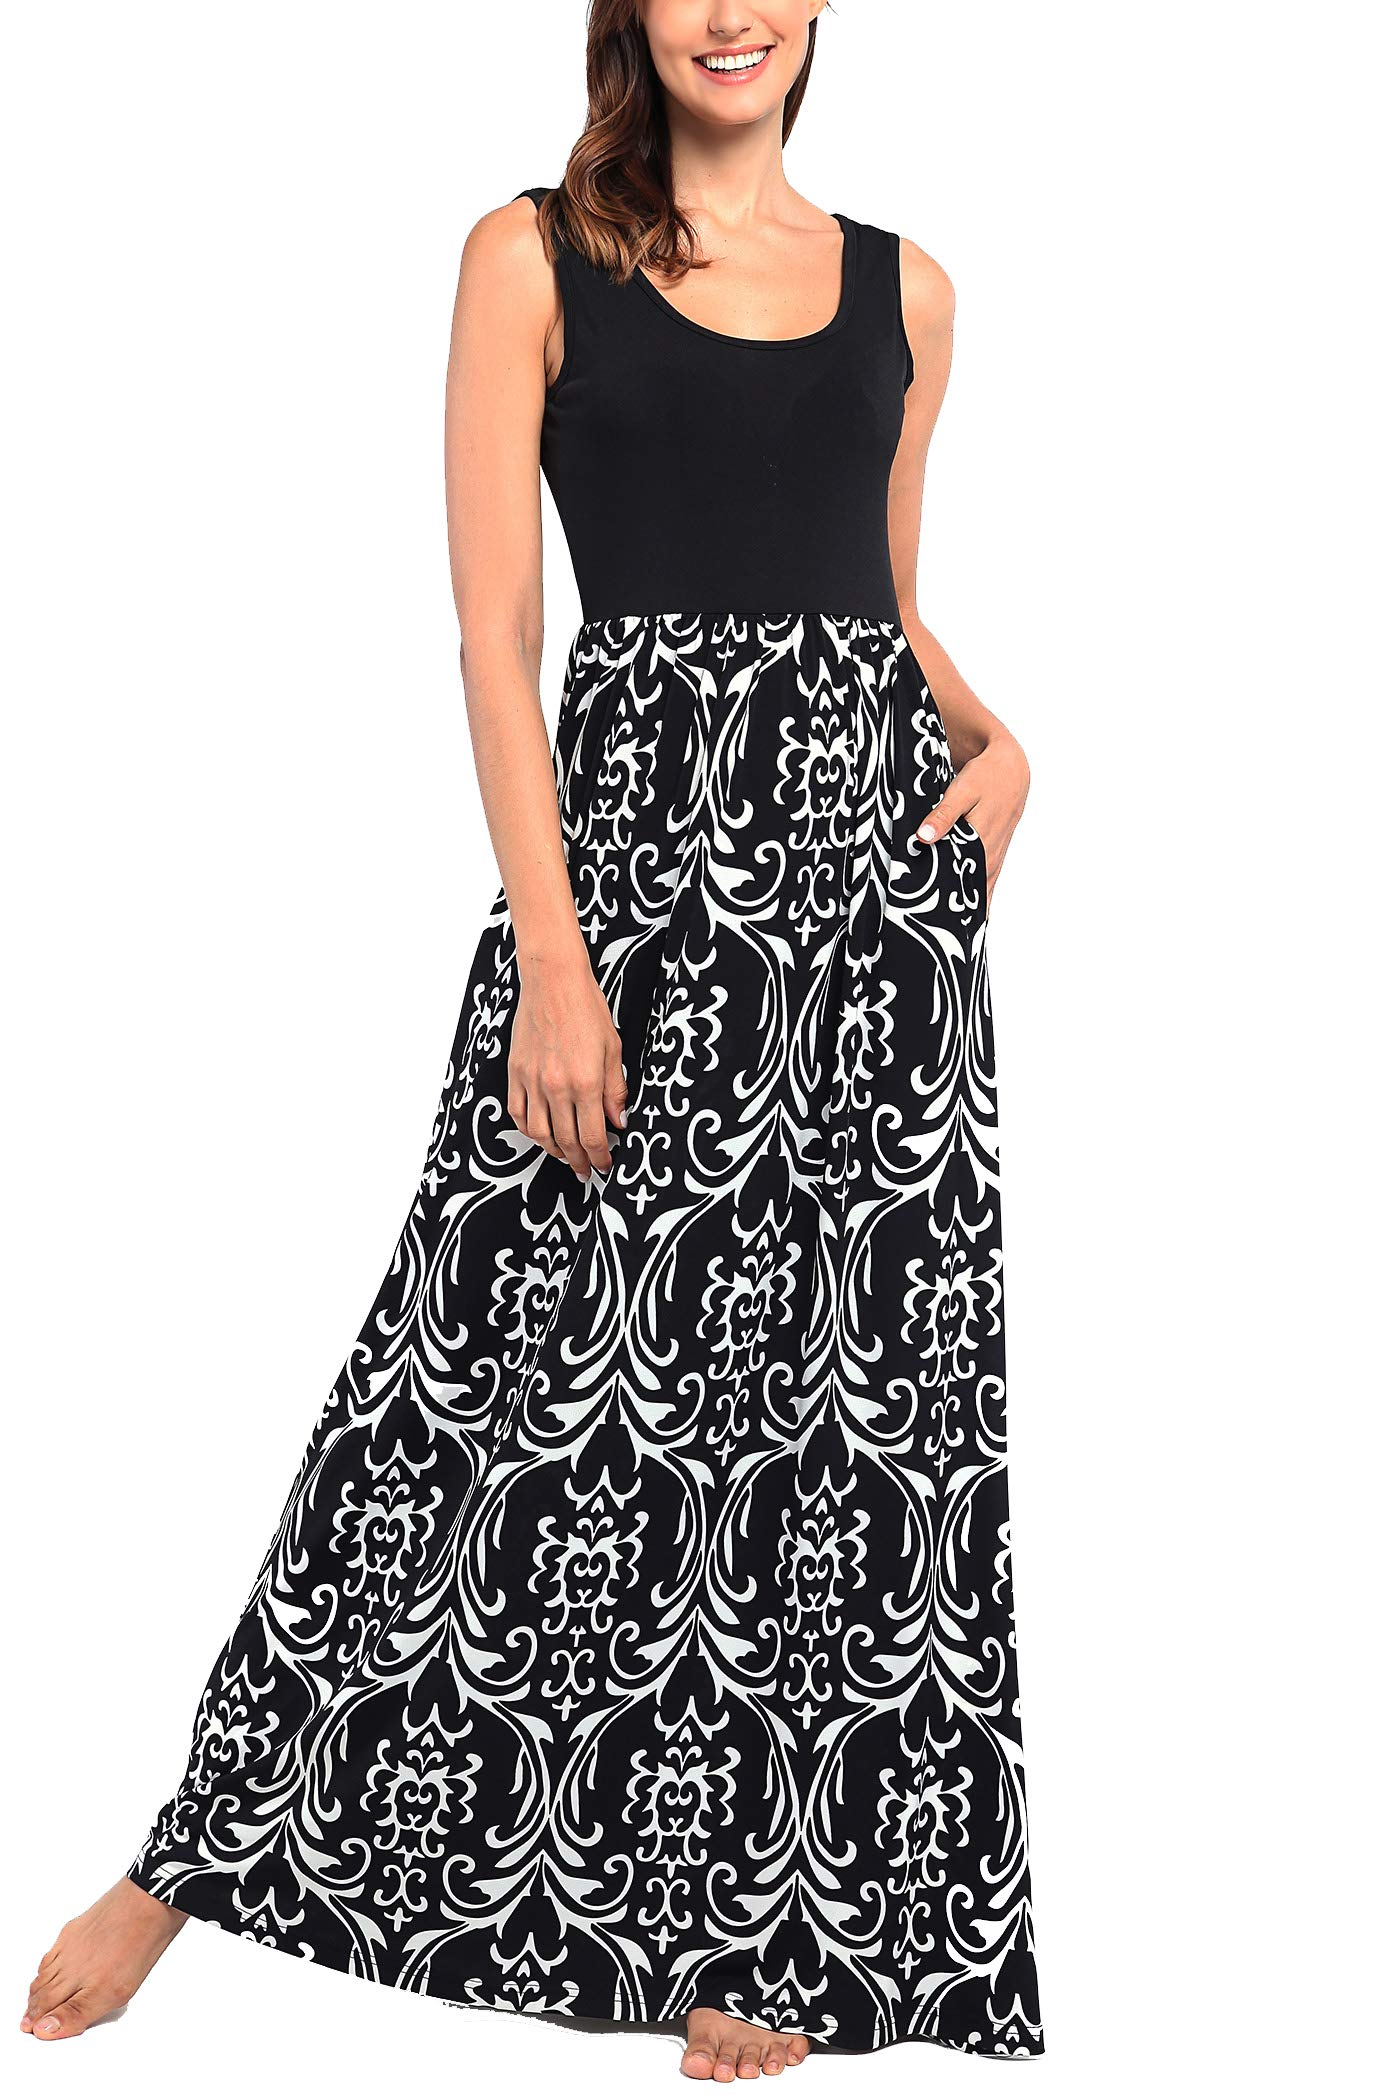 Comila Long Dresses with Pockets for Women, Ladies Dresses Casual Black Floral Maxi Dress Elegant Scoop Neck Empire Waist Racerback Maxi Tank Dress M (US 8-10)